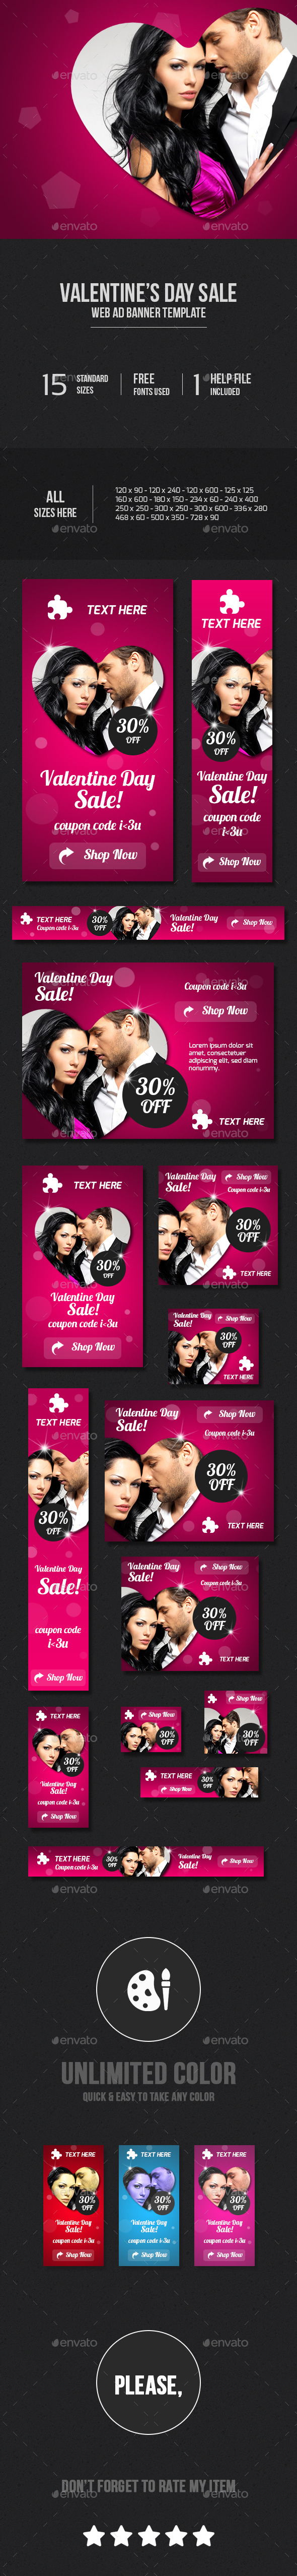 GraphicRiver Valentine s Day Web Ad Banners 10112845